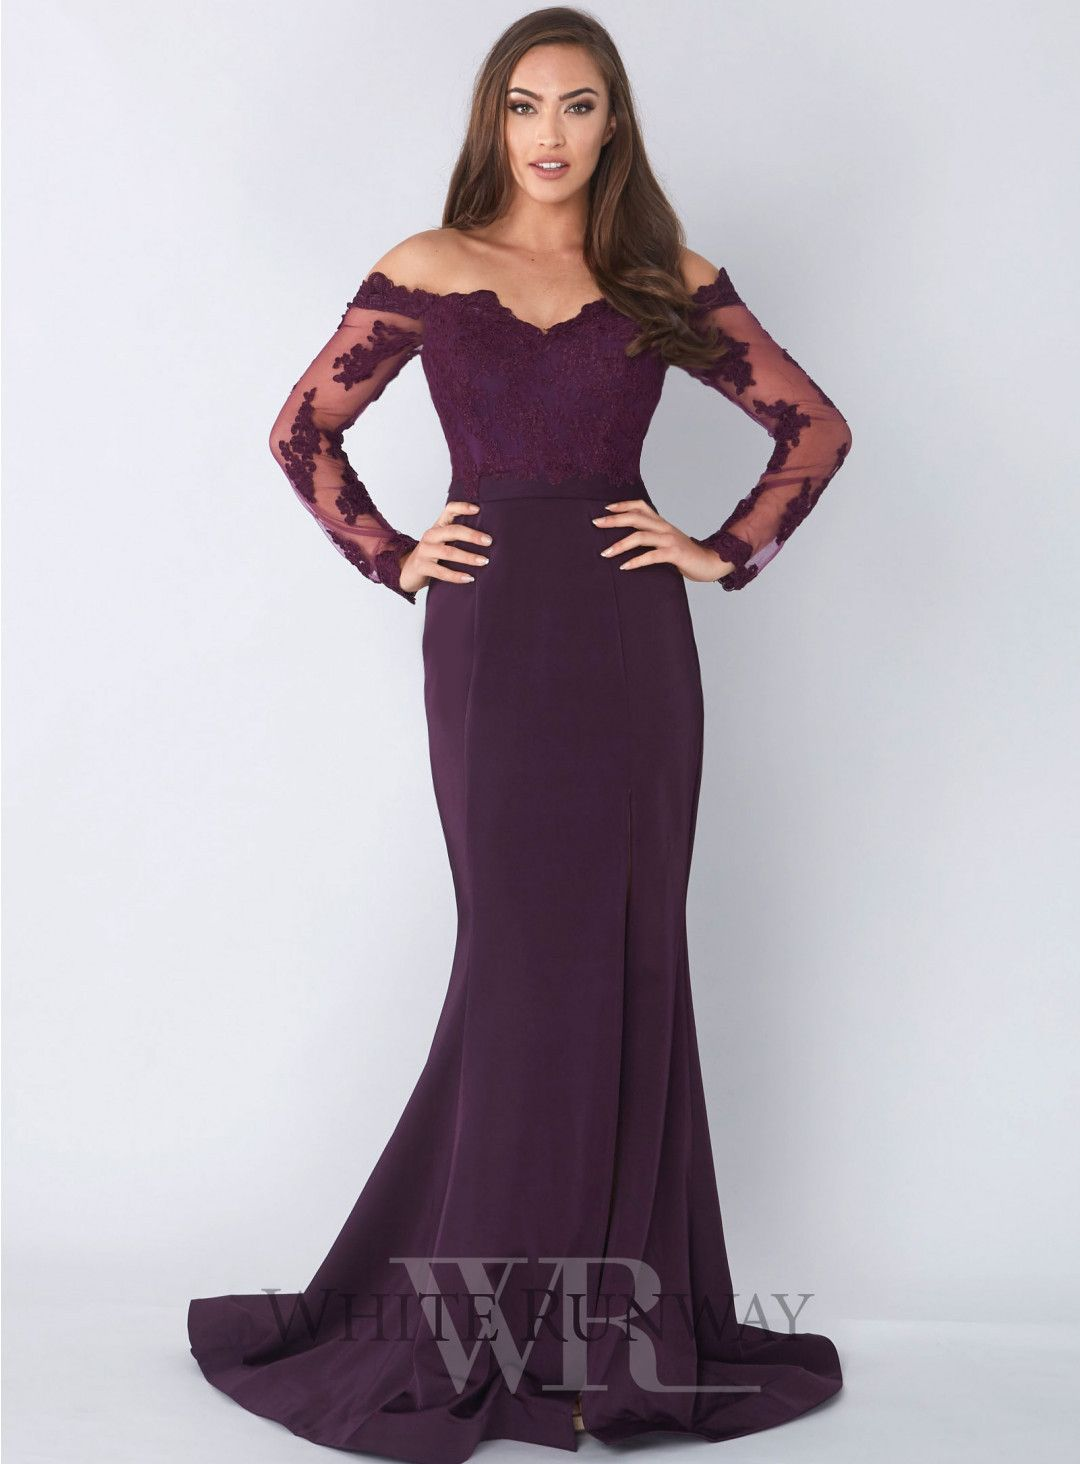 7b237c771c99 Rosella Gown. A beautiful full length dress by Jadore. An off shoulder  style featuring a lace bodice and sleeves. Available in Red